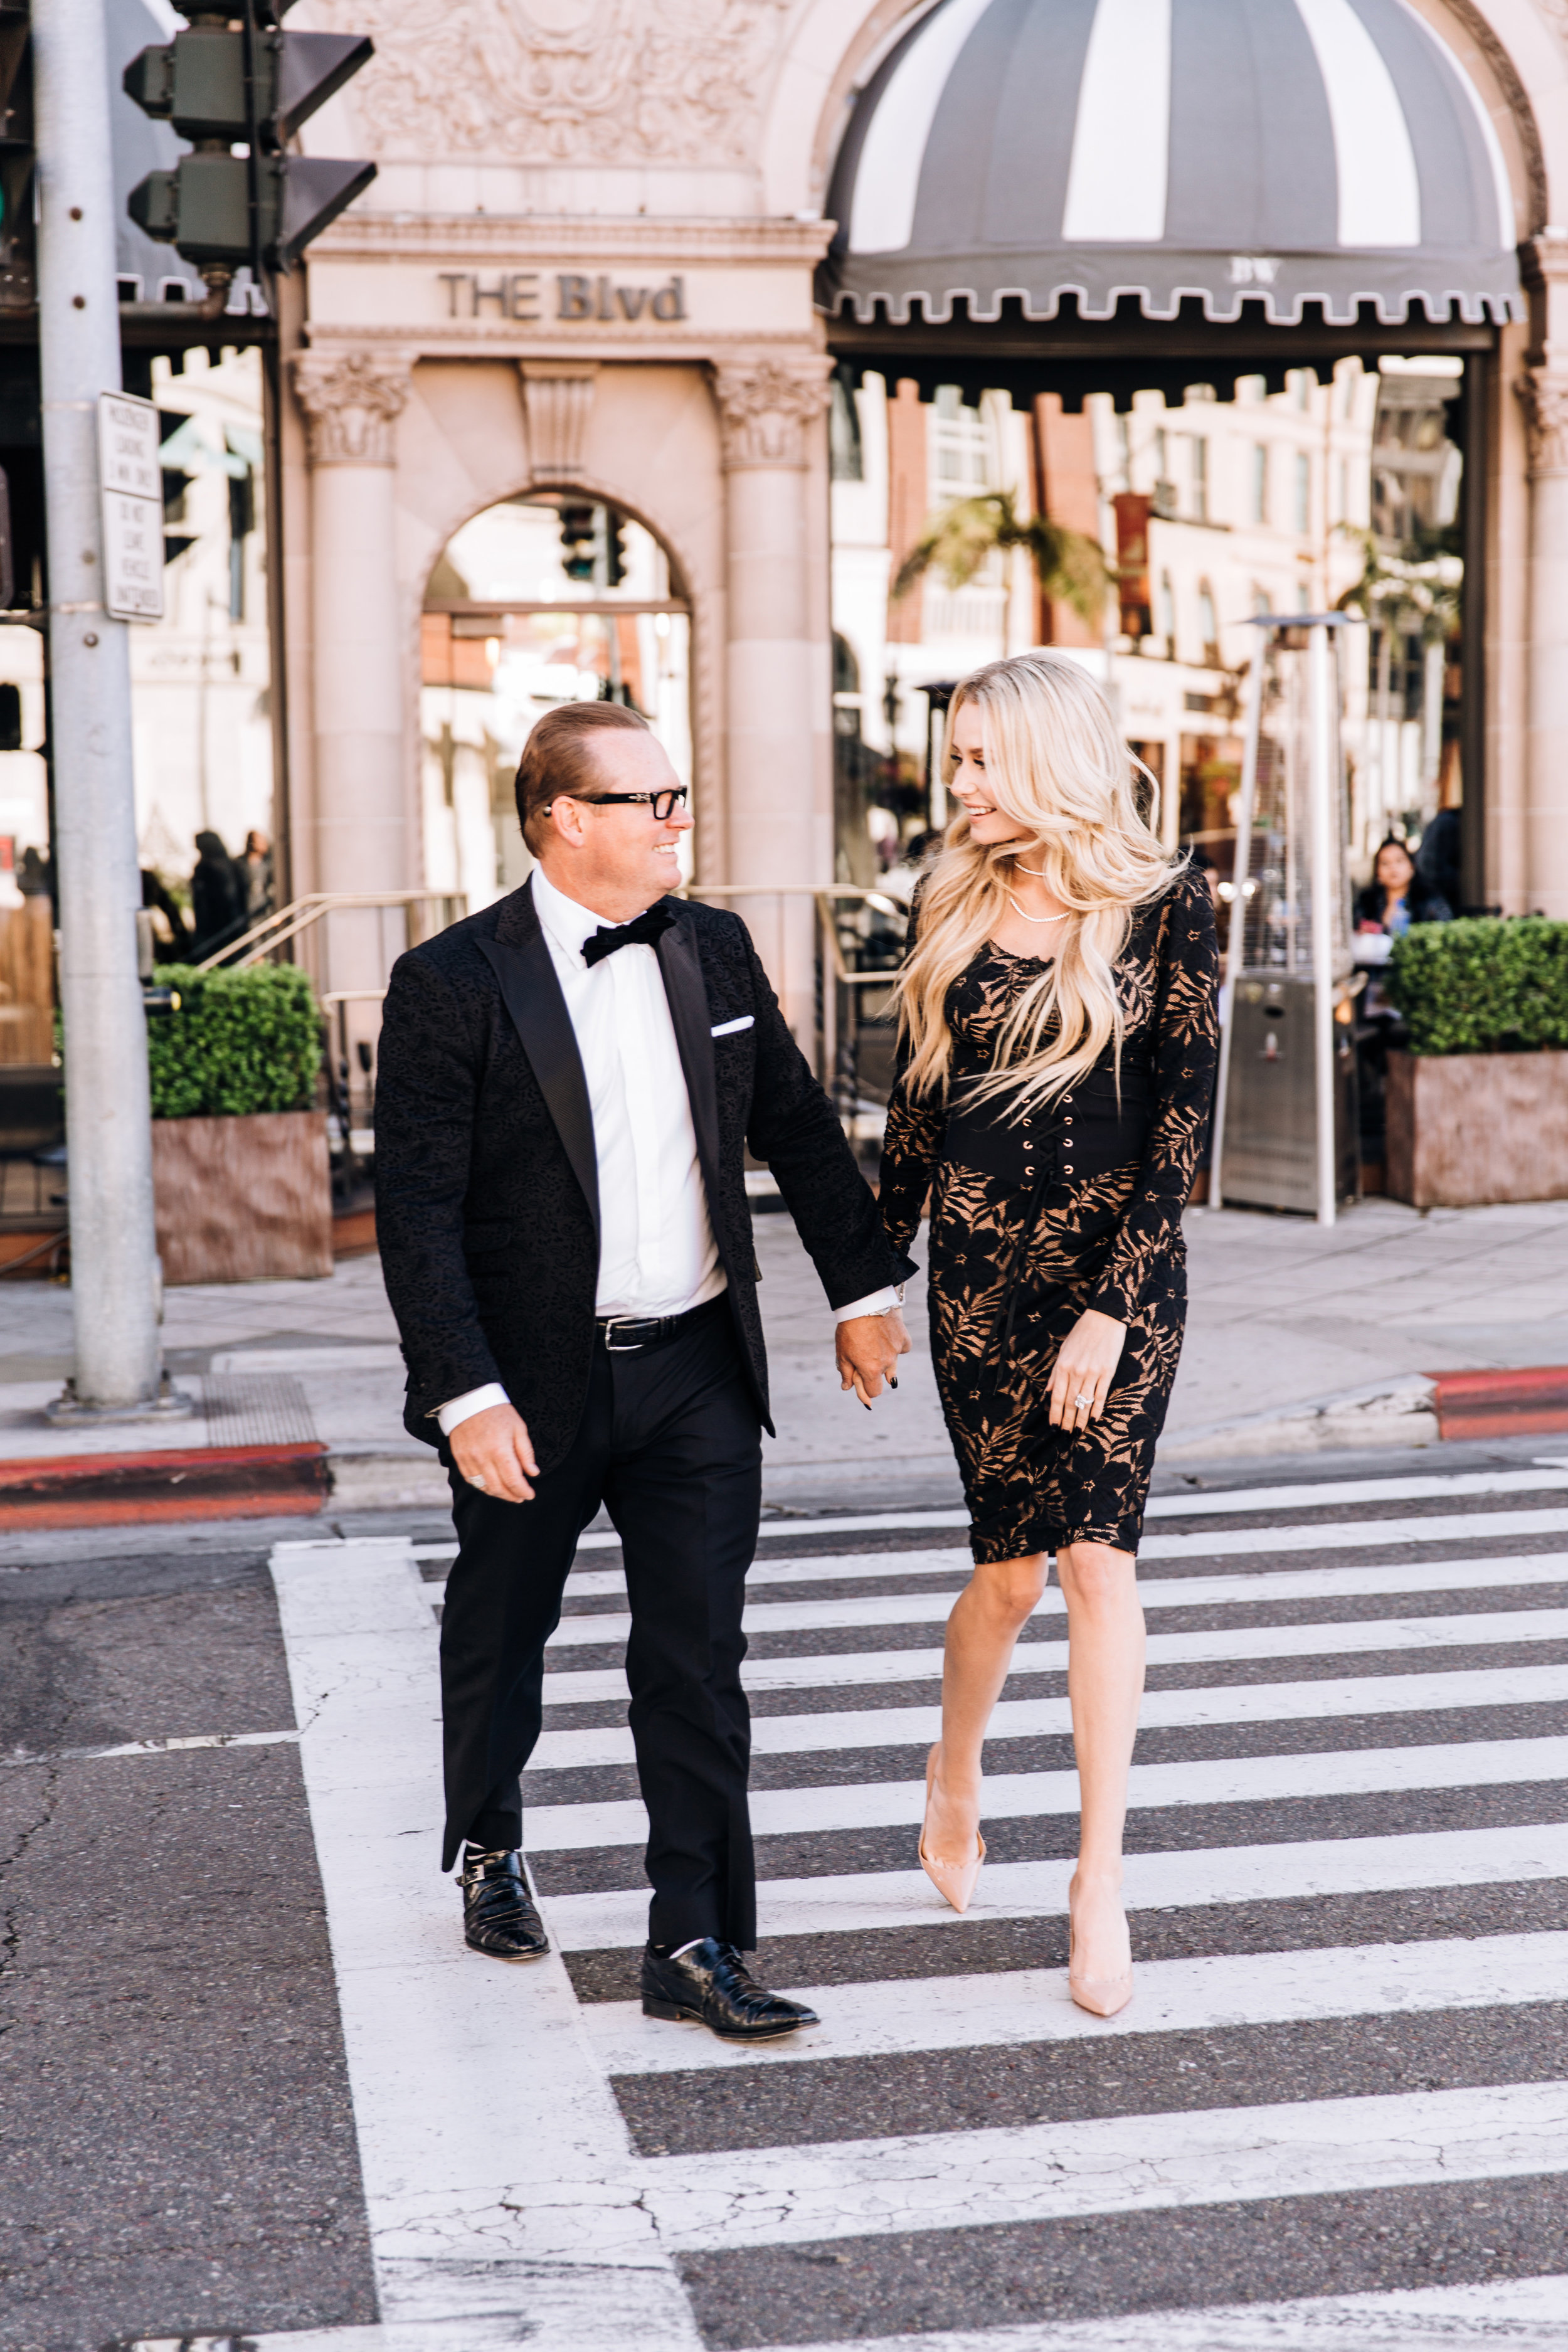 KaraNixonWeddings-BeverlyHills-RodeoDr-Engagement-15.jpg